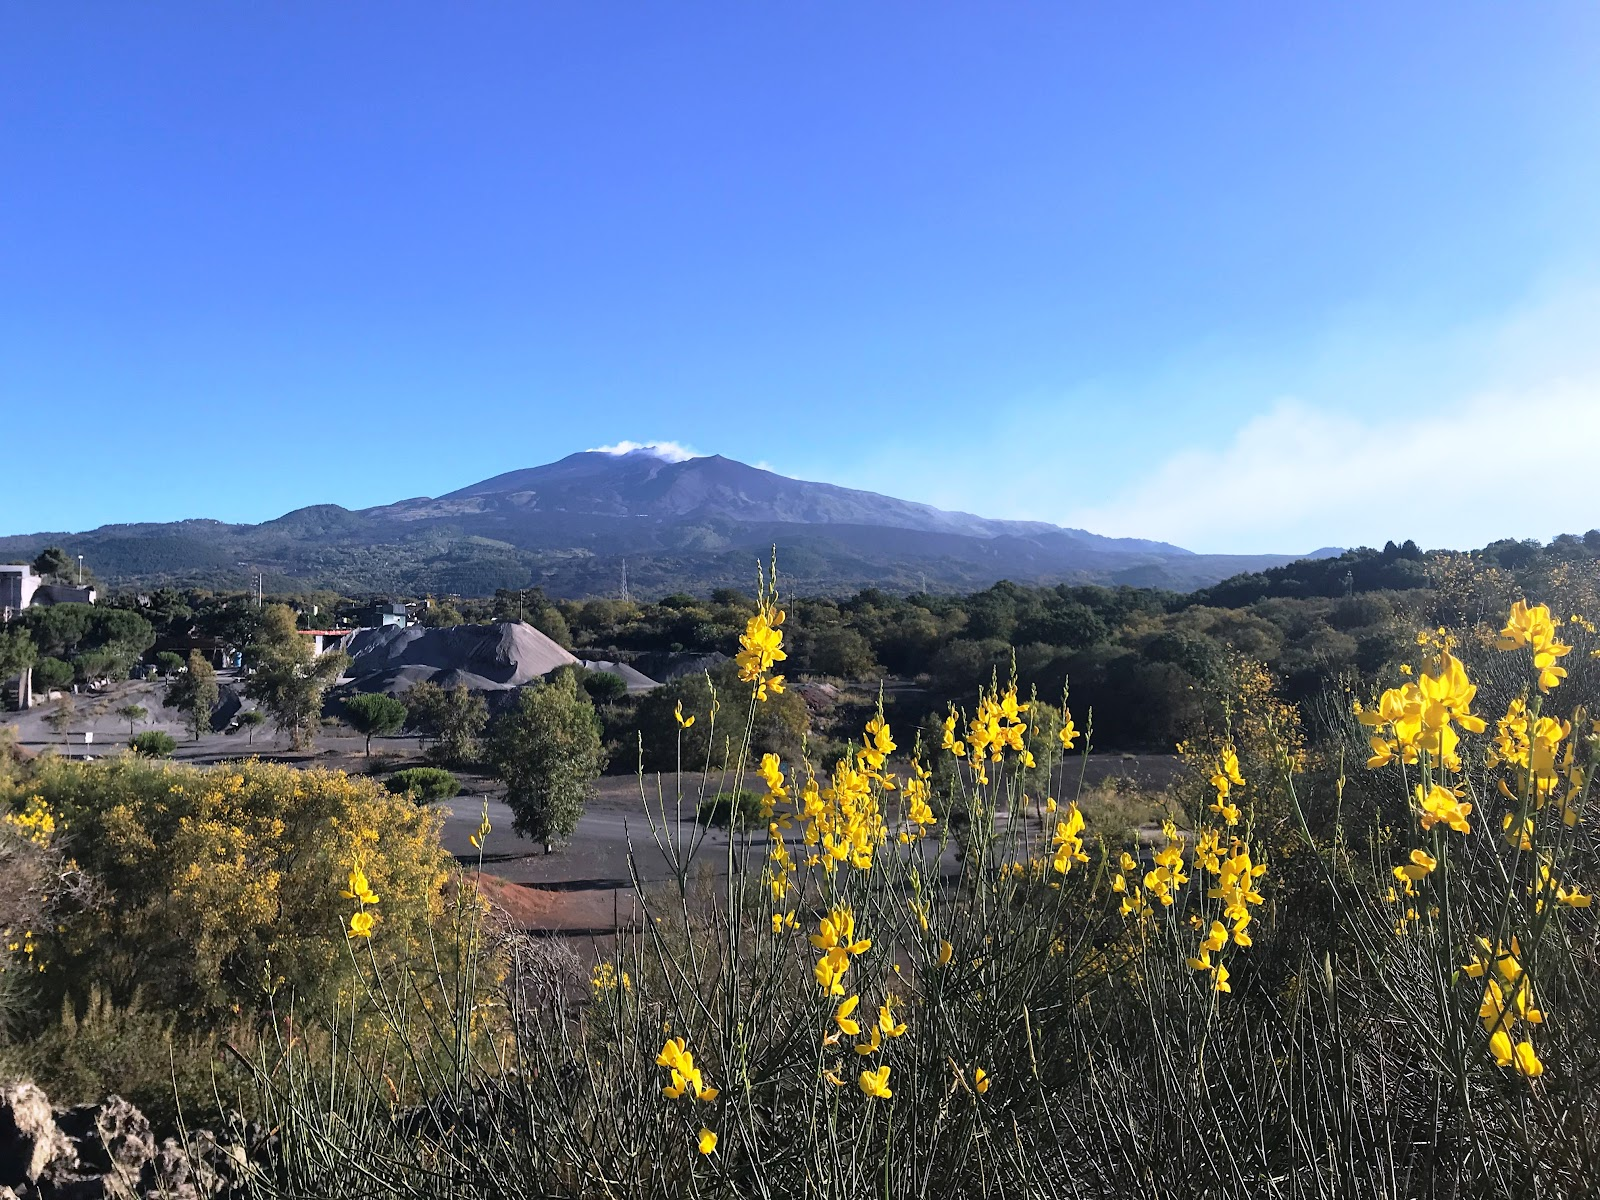 Mount Etna Summit from afar with flowers in foreground